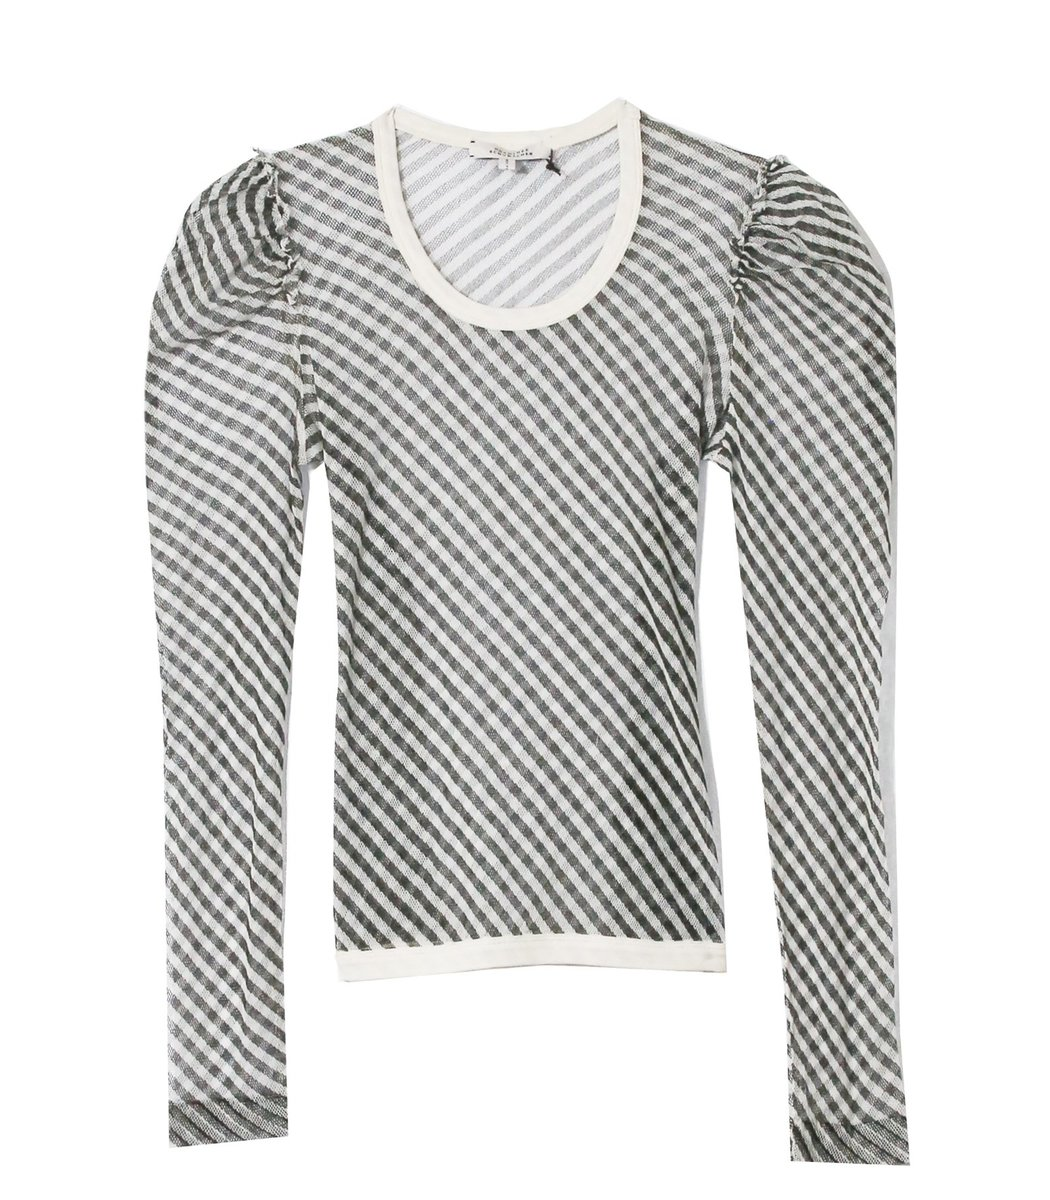 Dorothee Schumacher Transparent Coolness Shirt in Beige Black Stripes TS